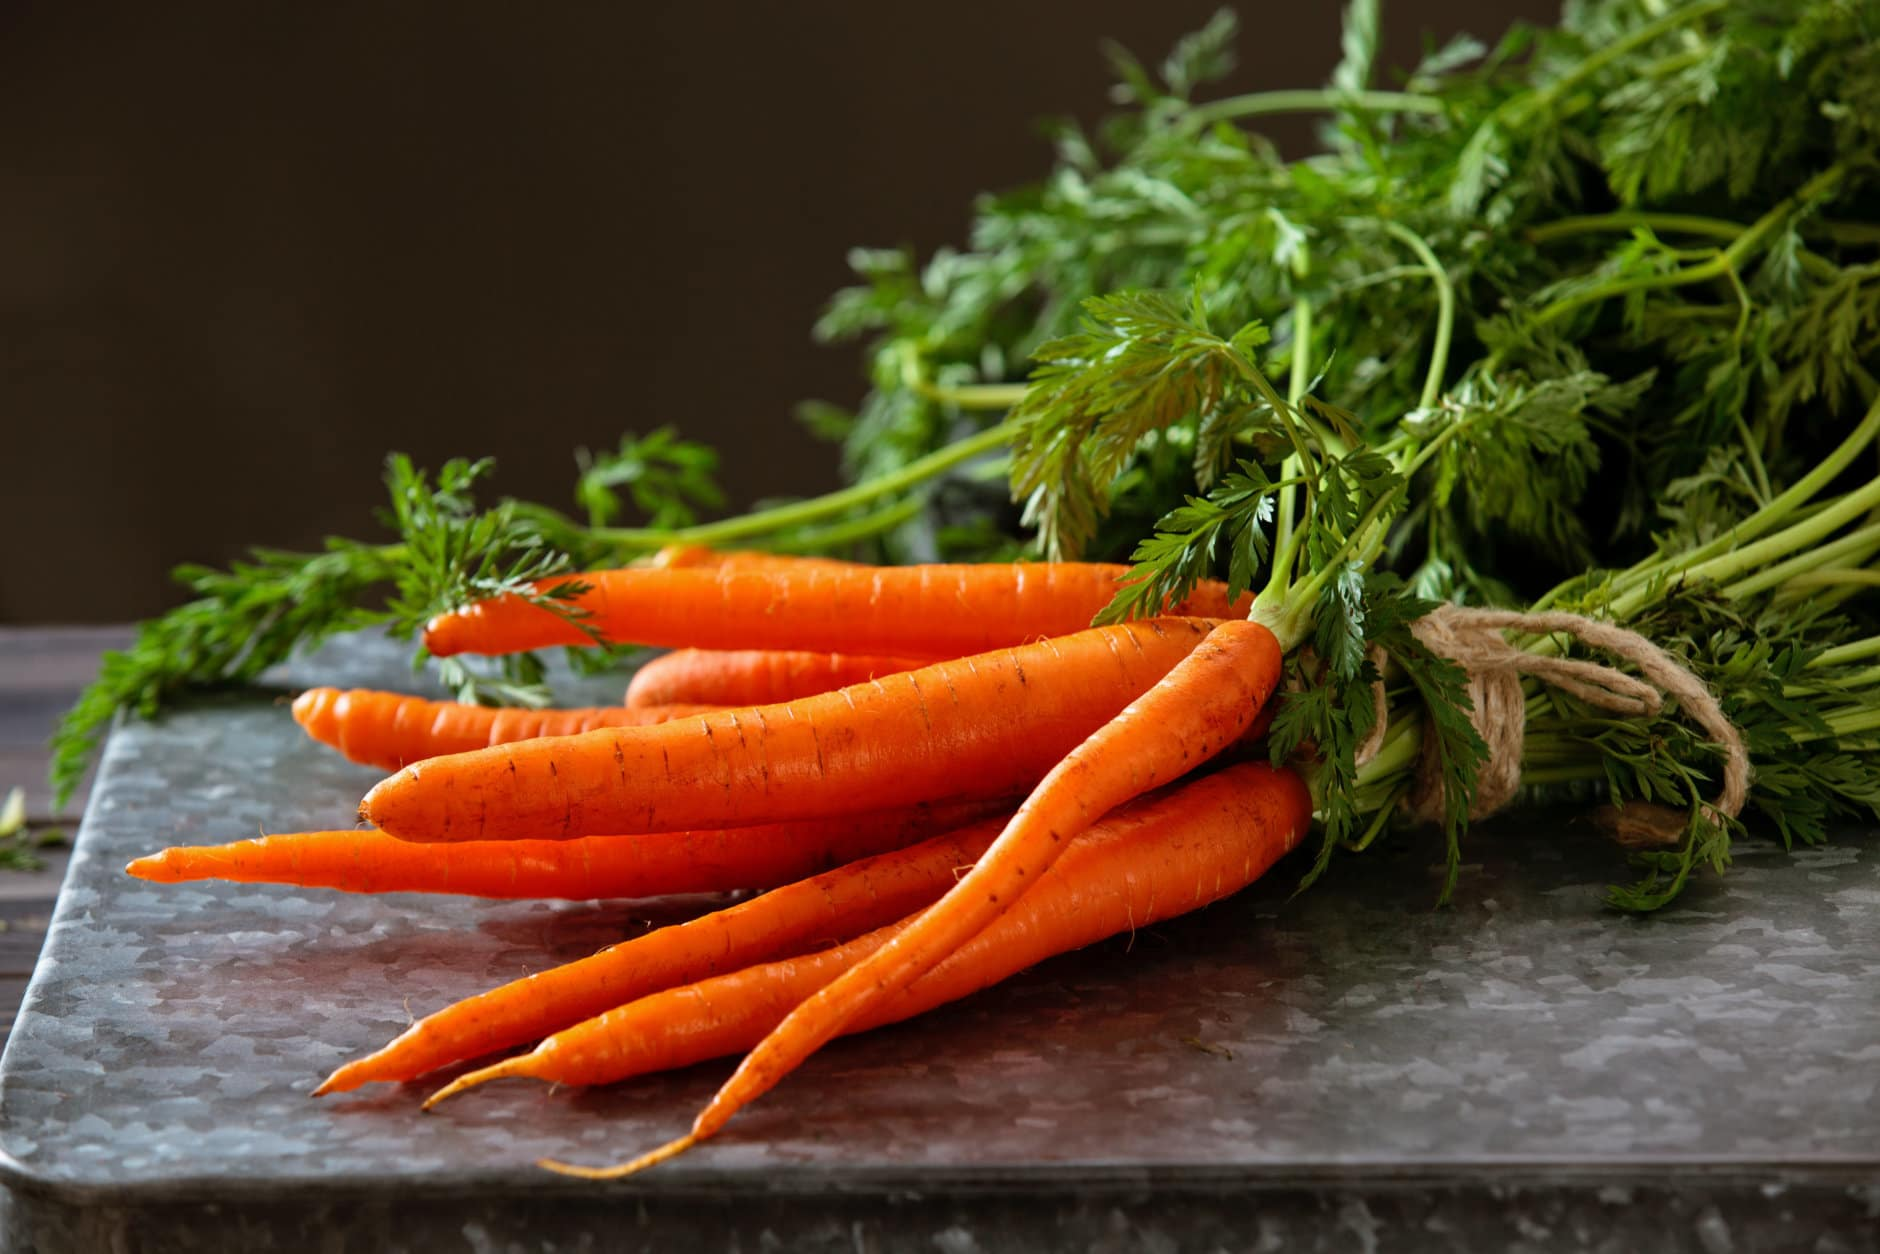 Heap of ripe carrots with leaves on dark rustic table.